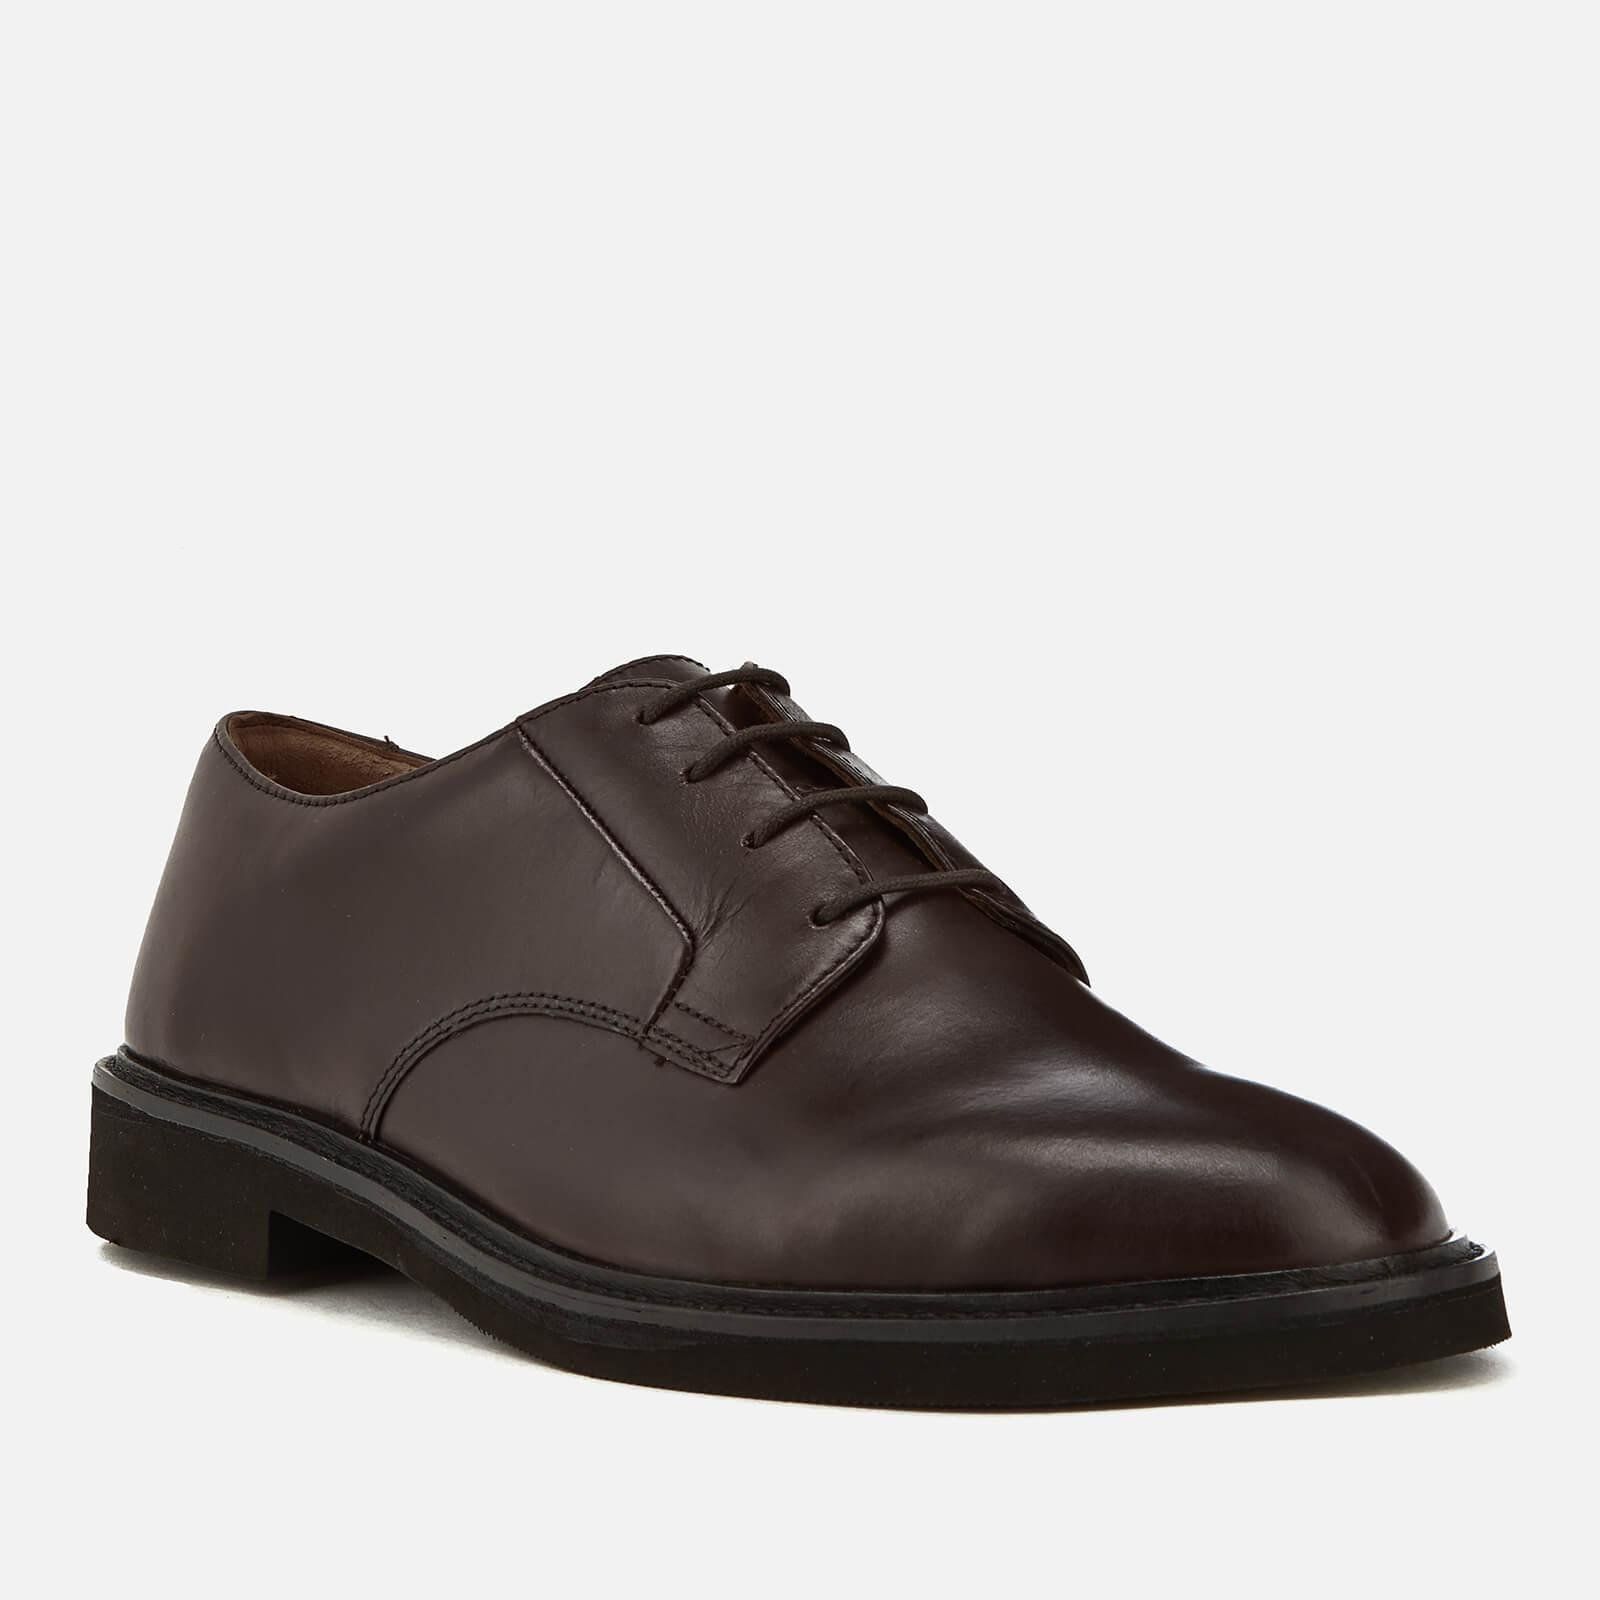 H by Hudson Ives Leather Light Derby Shoes in Brown for Men